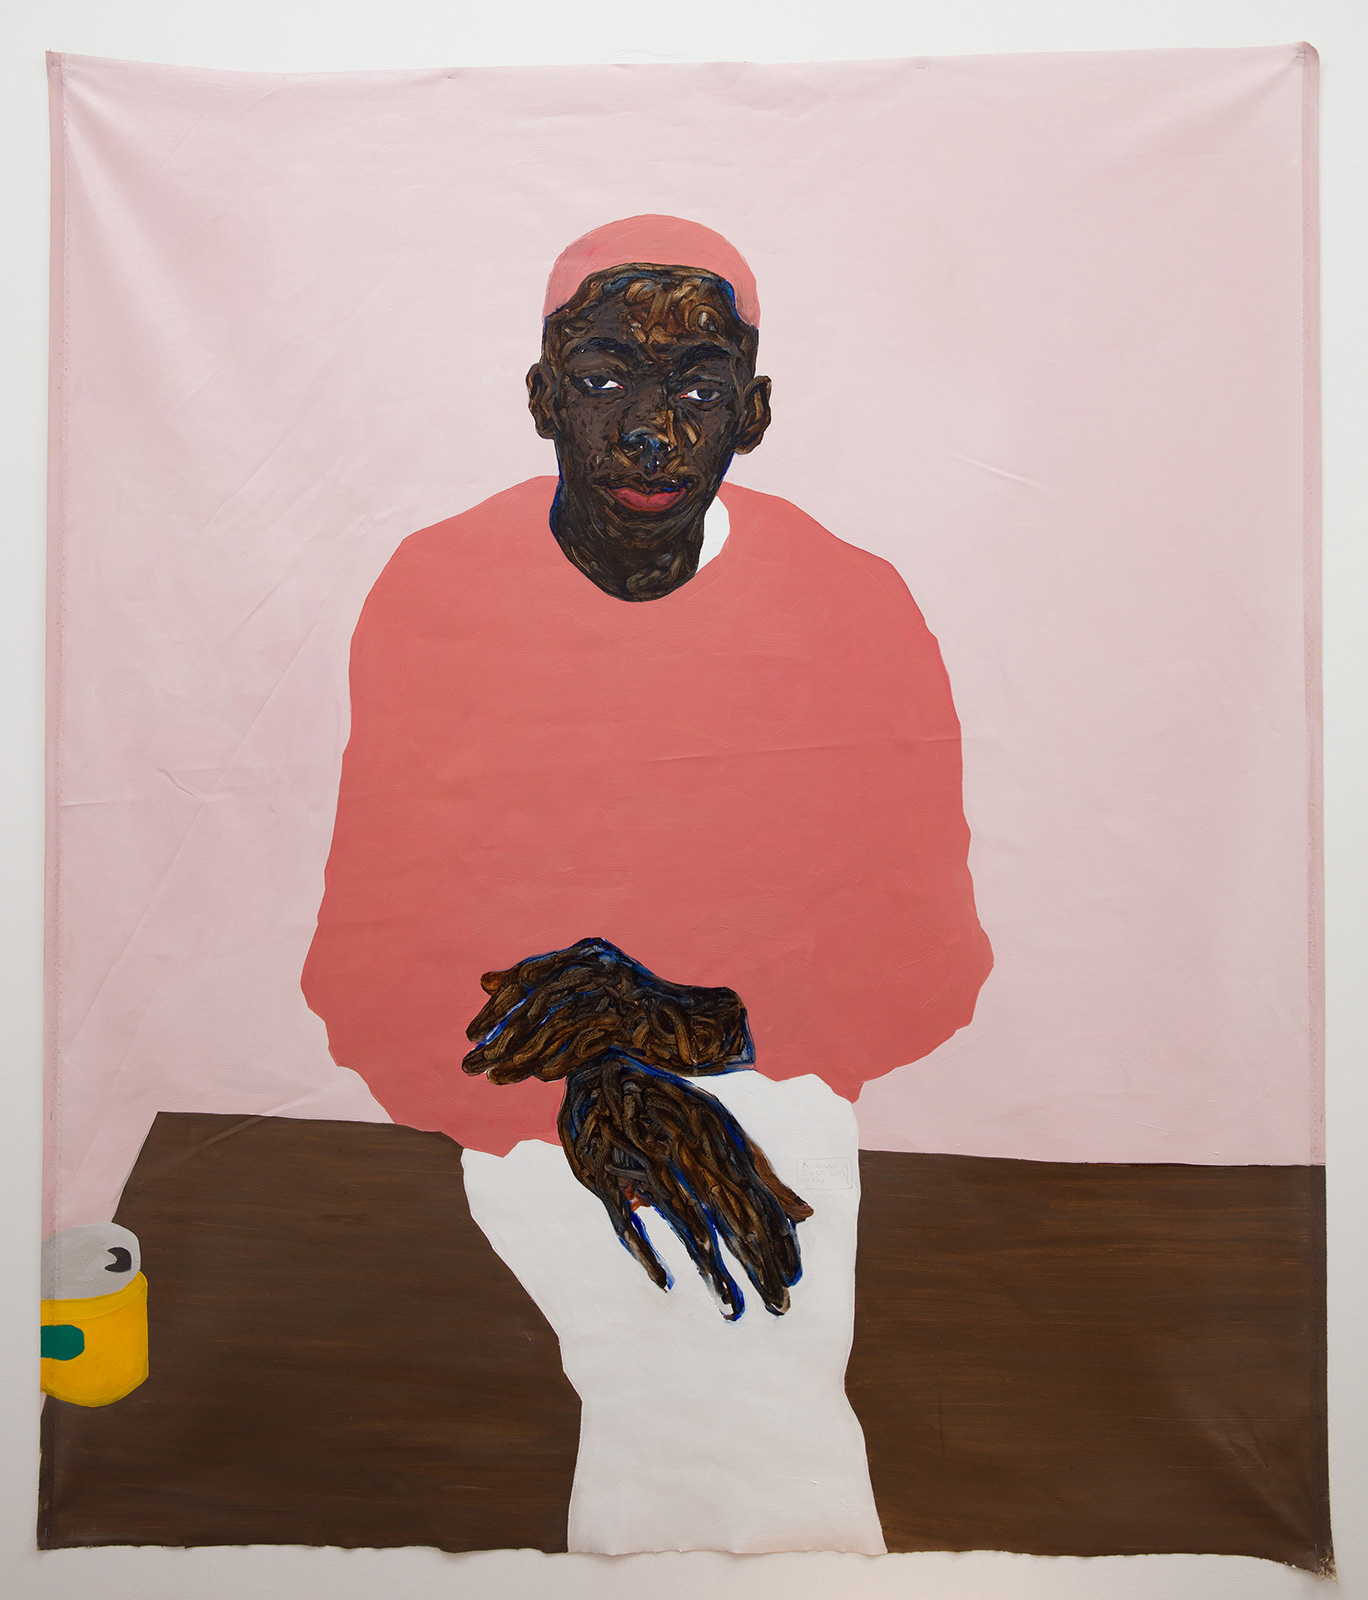 """""""When I look at you, do you see me?"""" Painter Amoako Boafo urges us to consider the complexities of blackness"""